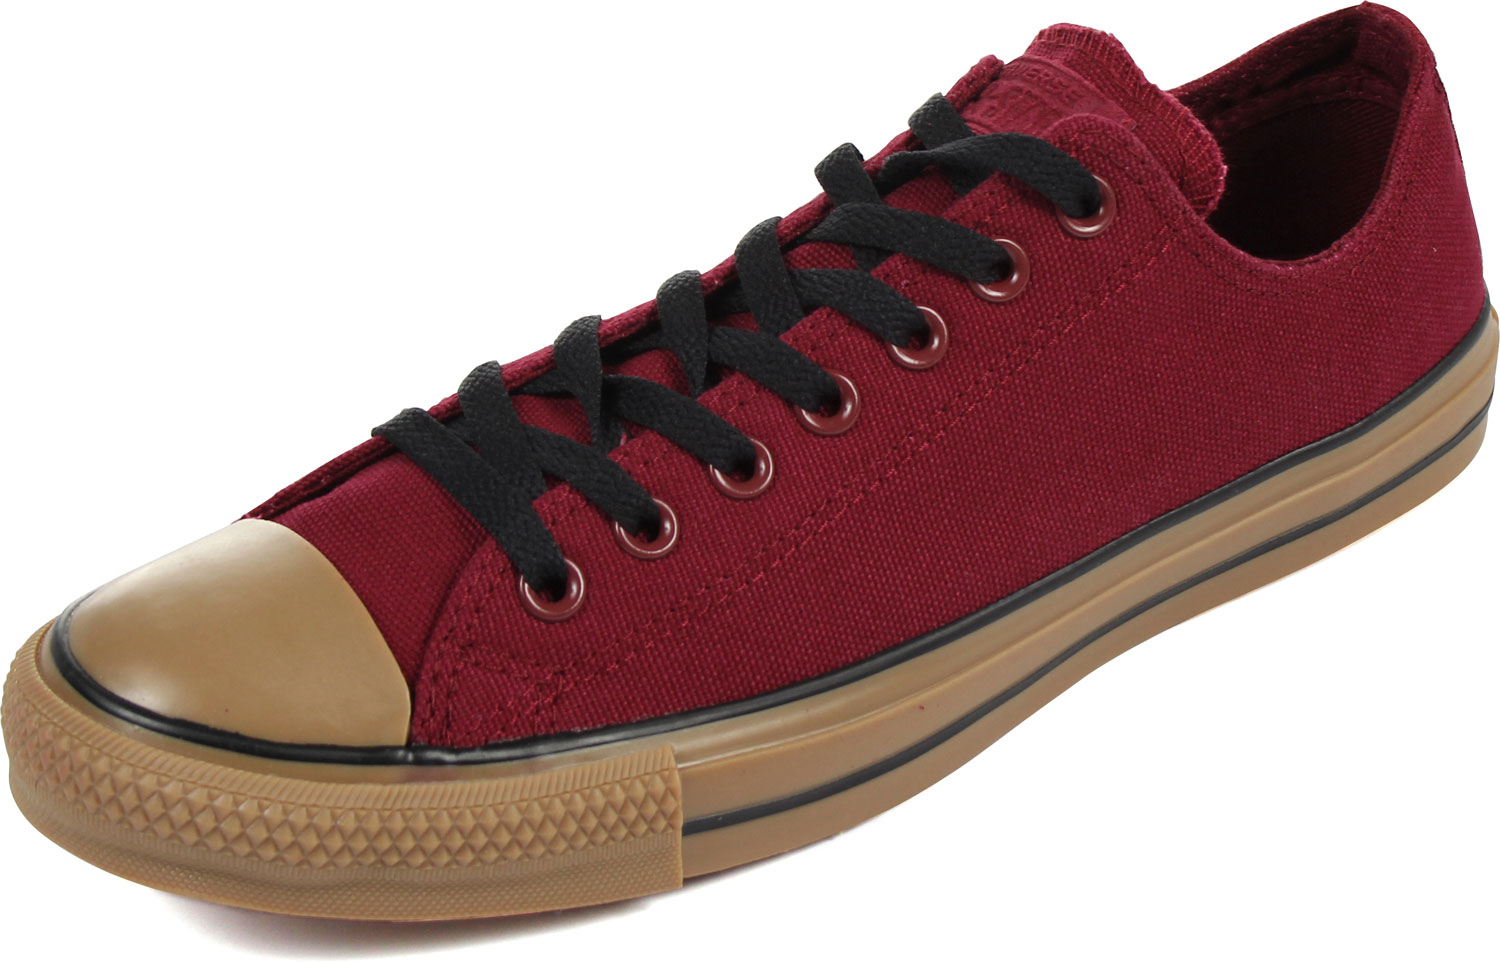 premium selection e4d59 1d5f4 Converse Chuck Taylor All Star Canvas Ox Shoes - Gum Bottoms